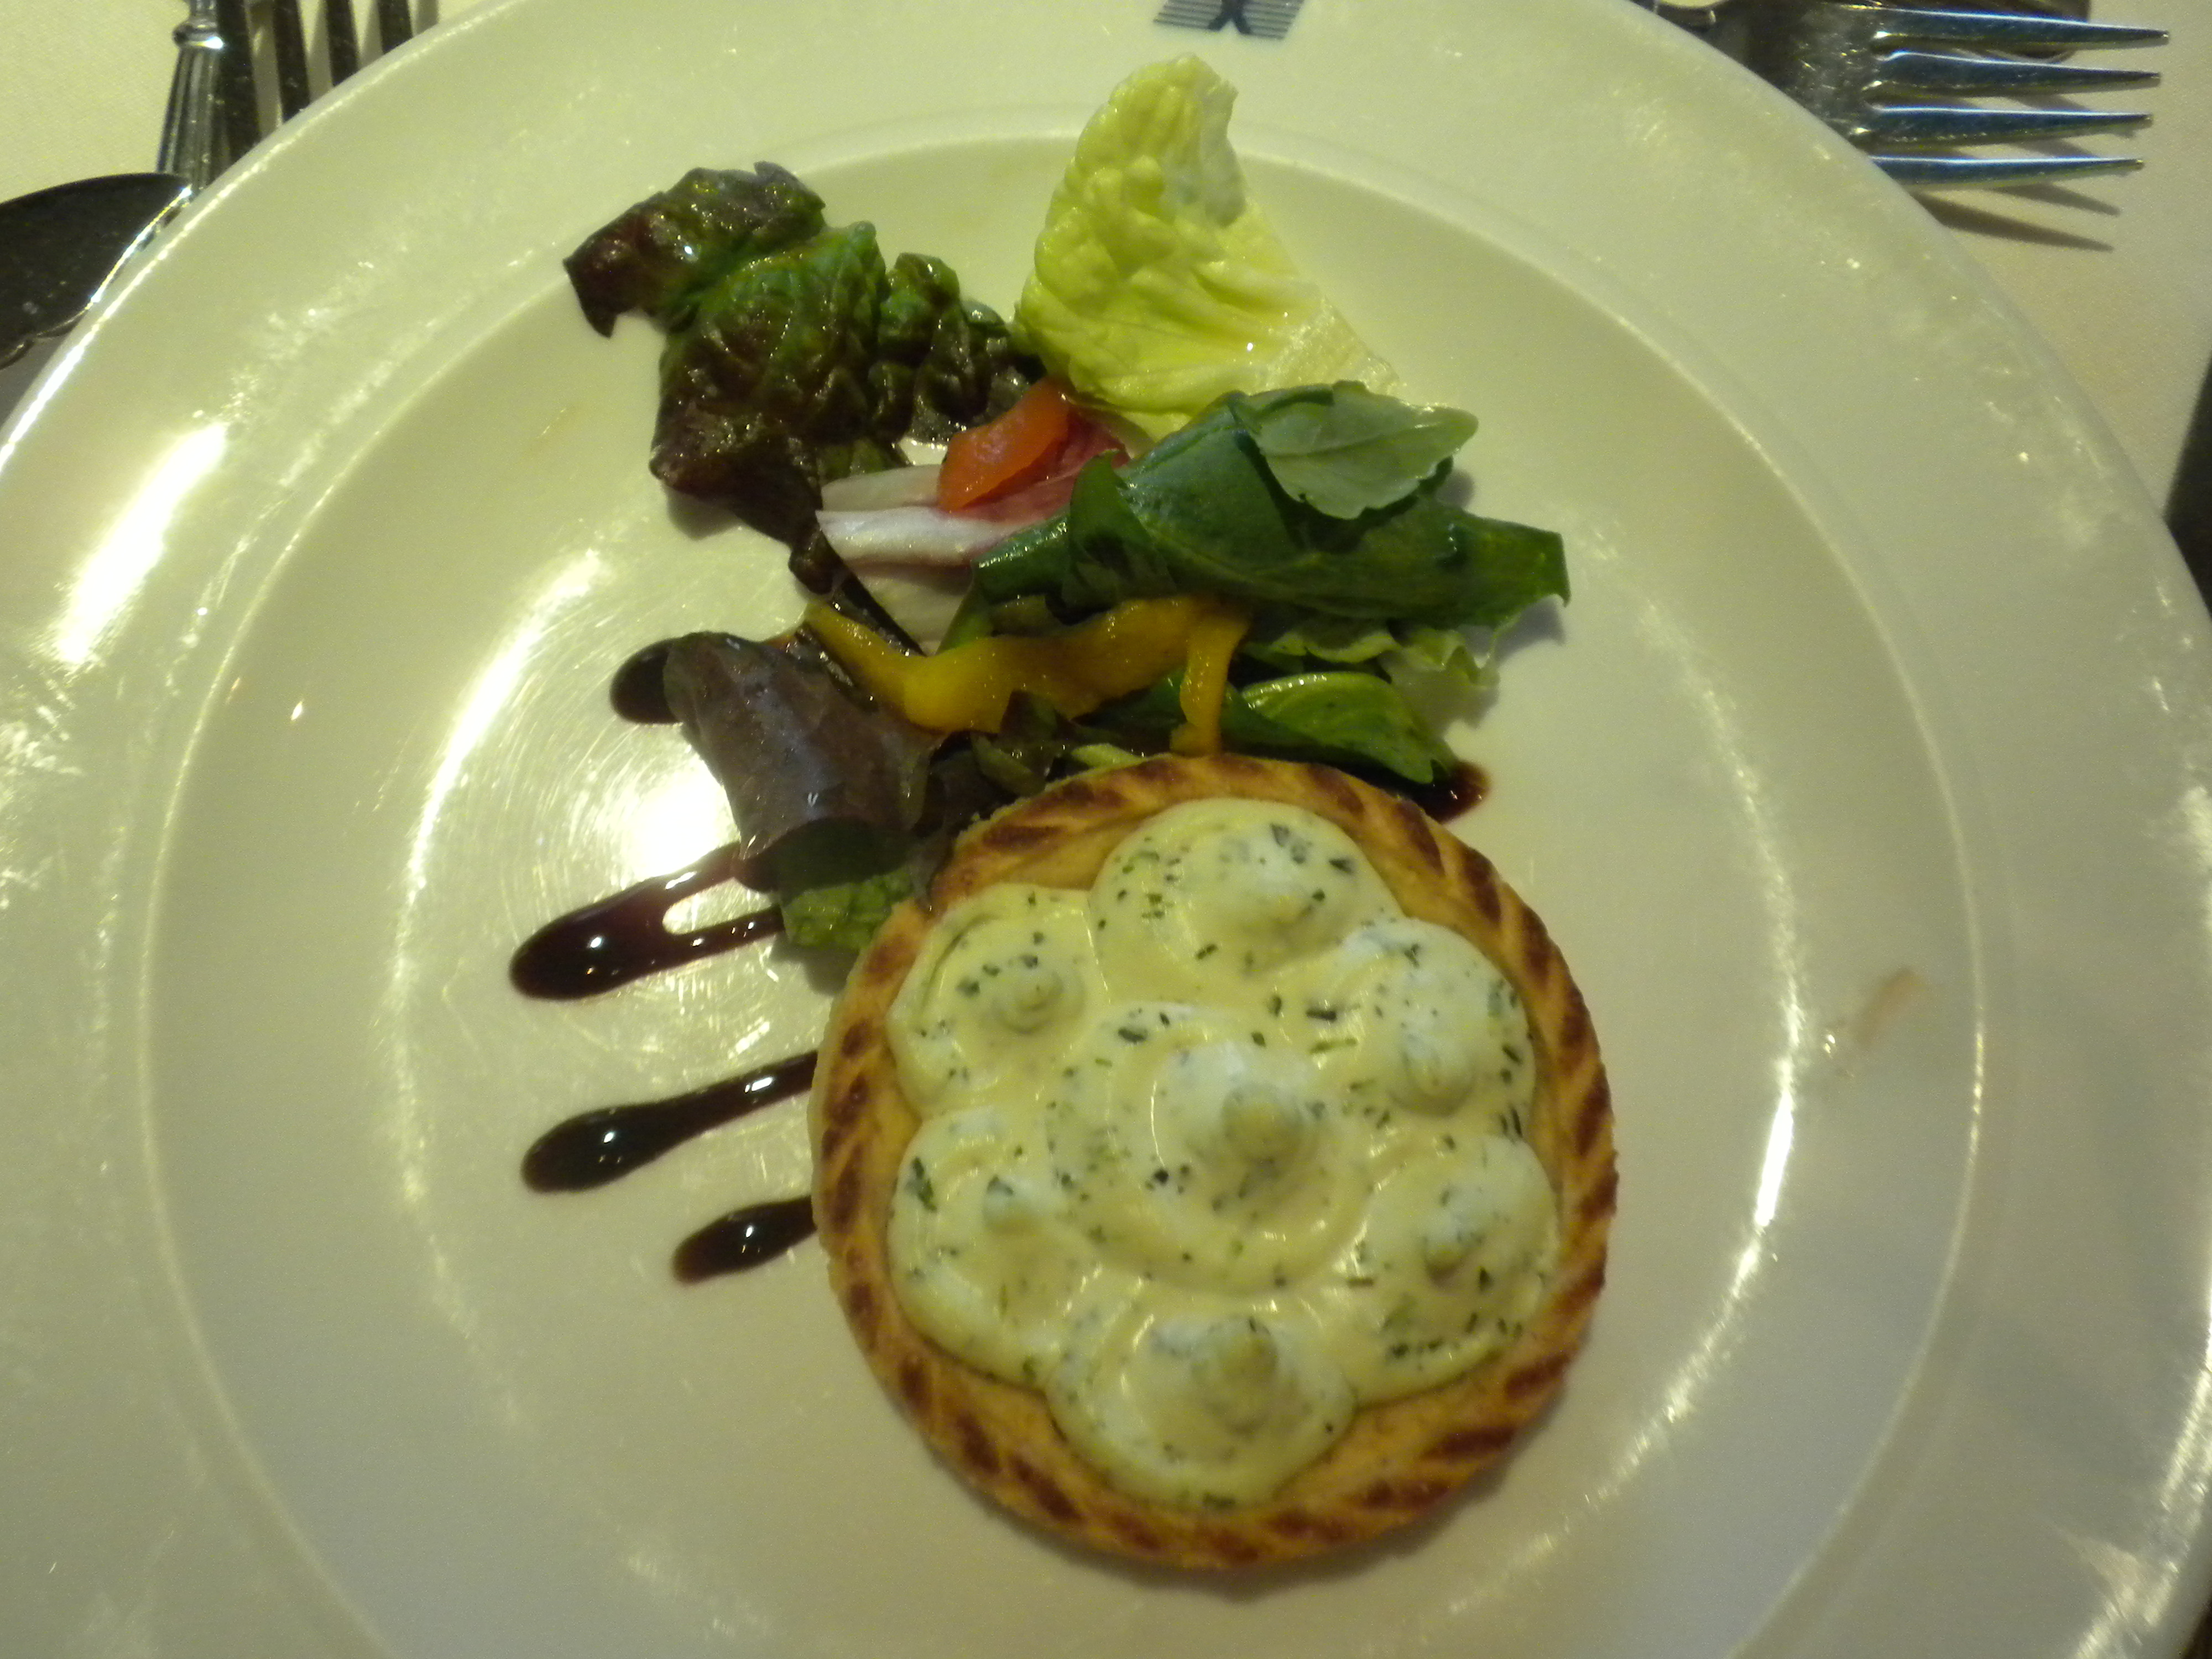 Baked Goat Cheese With Spring Vegetables Recipes — Dishmaps